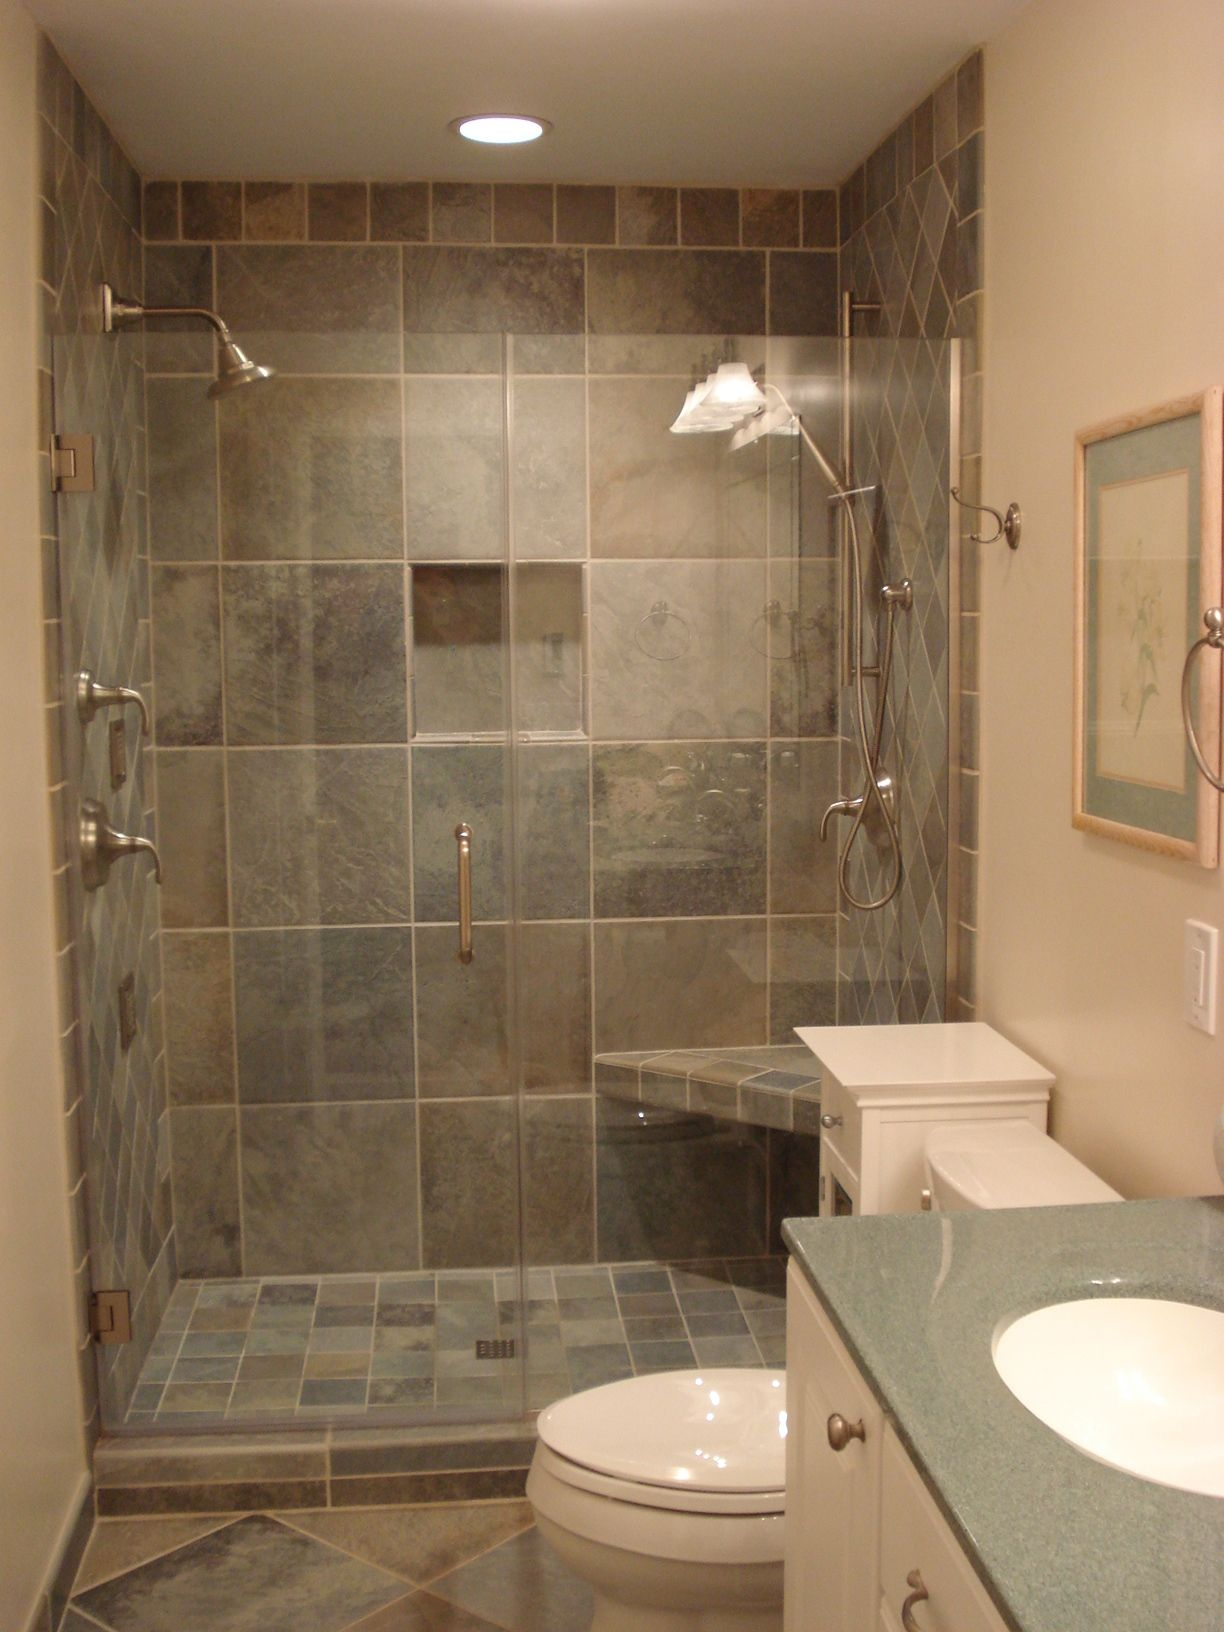 Remodel Bathroom Shower It Is Common For A Small Room To Be Designed In White Interior